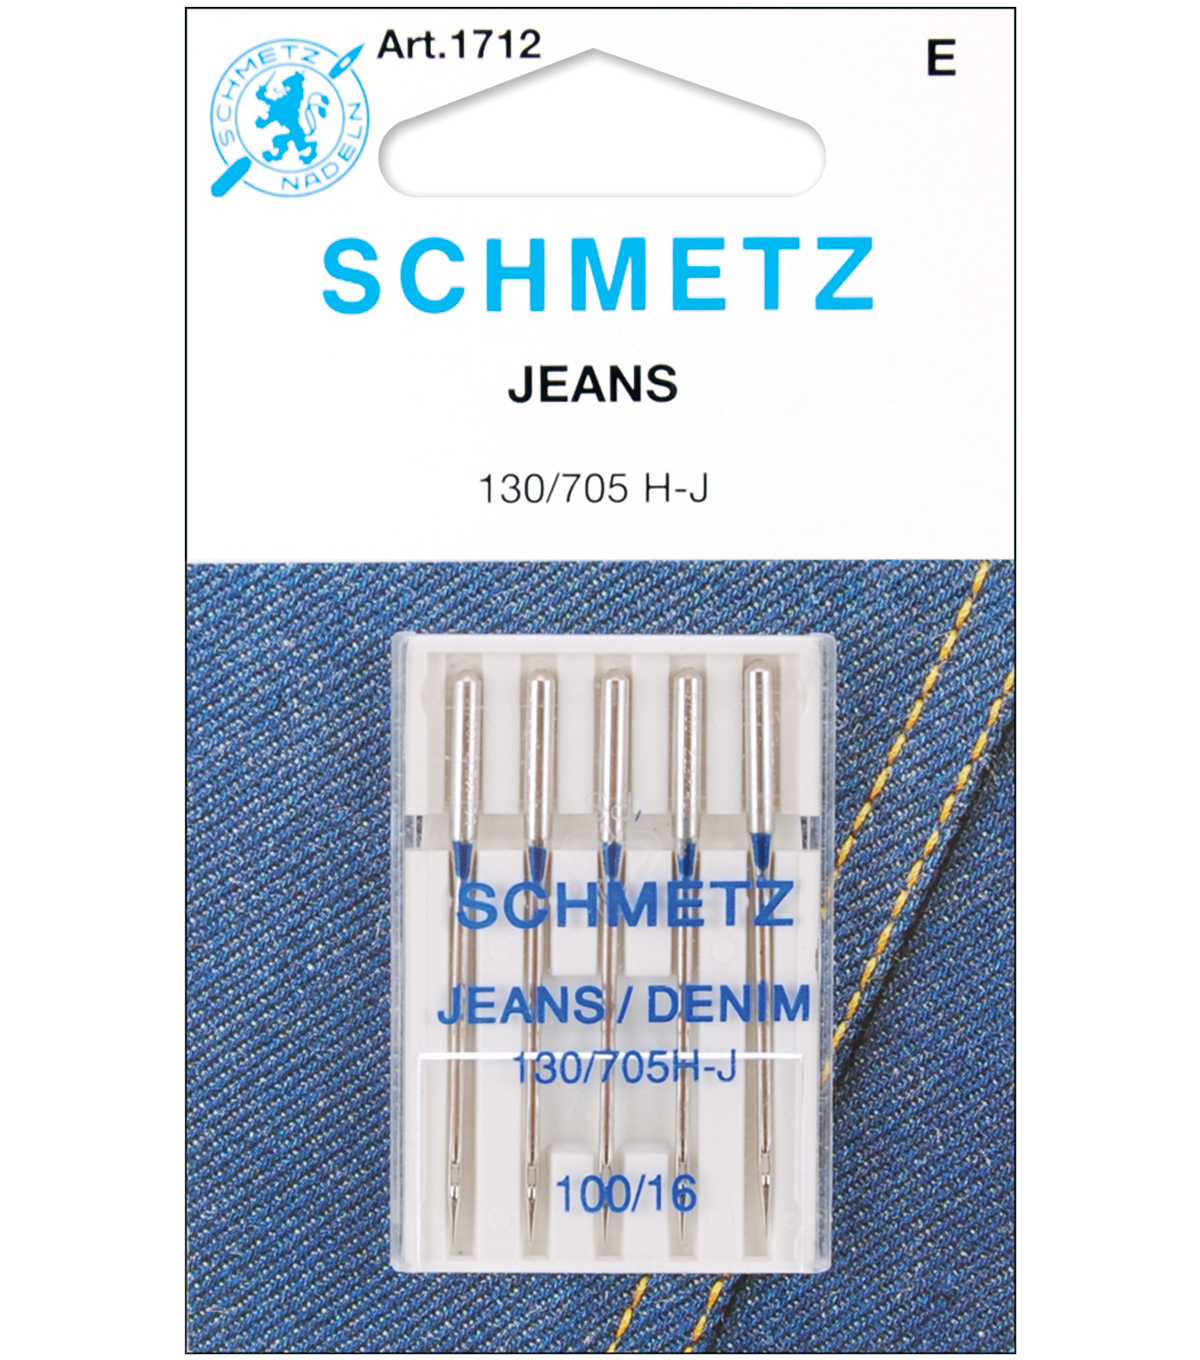 Schmetz Universal Point Machine Needles 5pcs Size 100/16